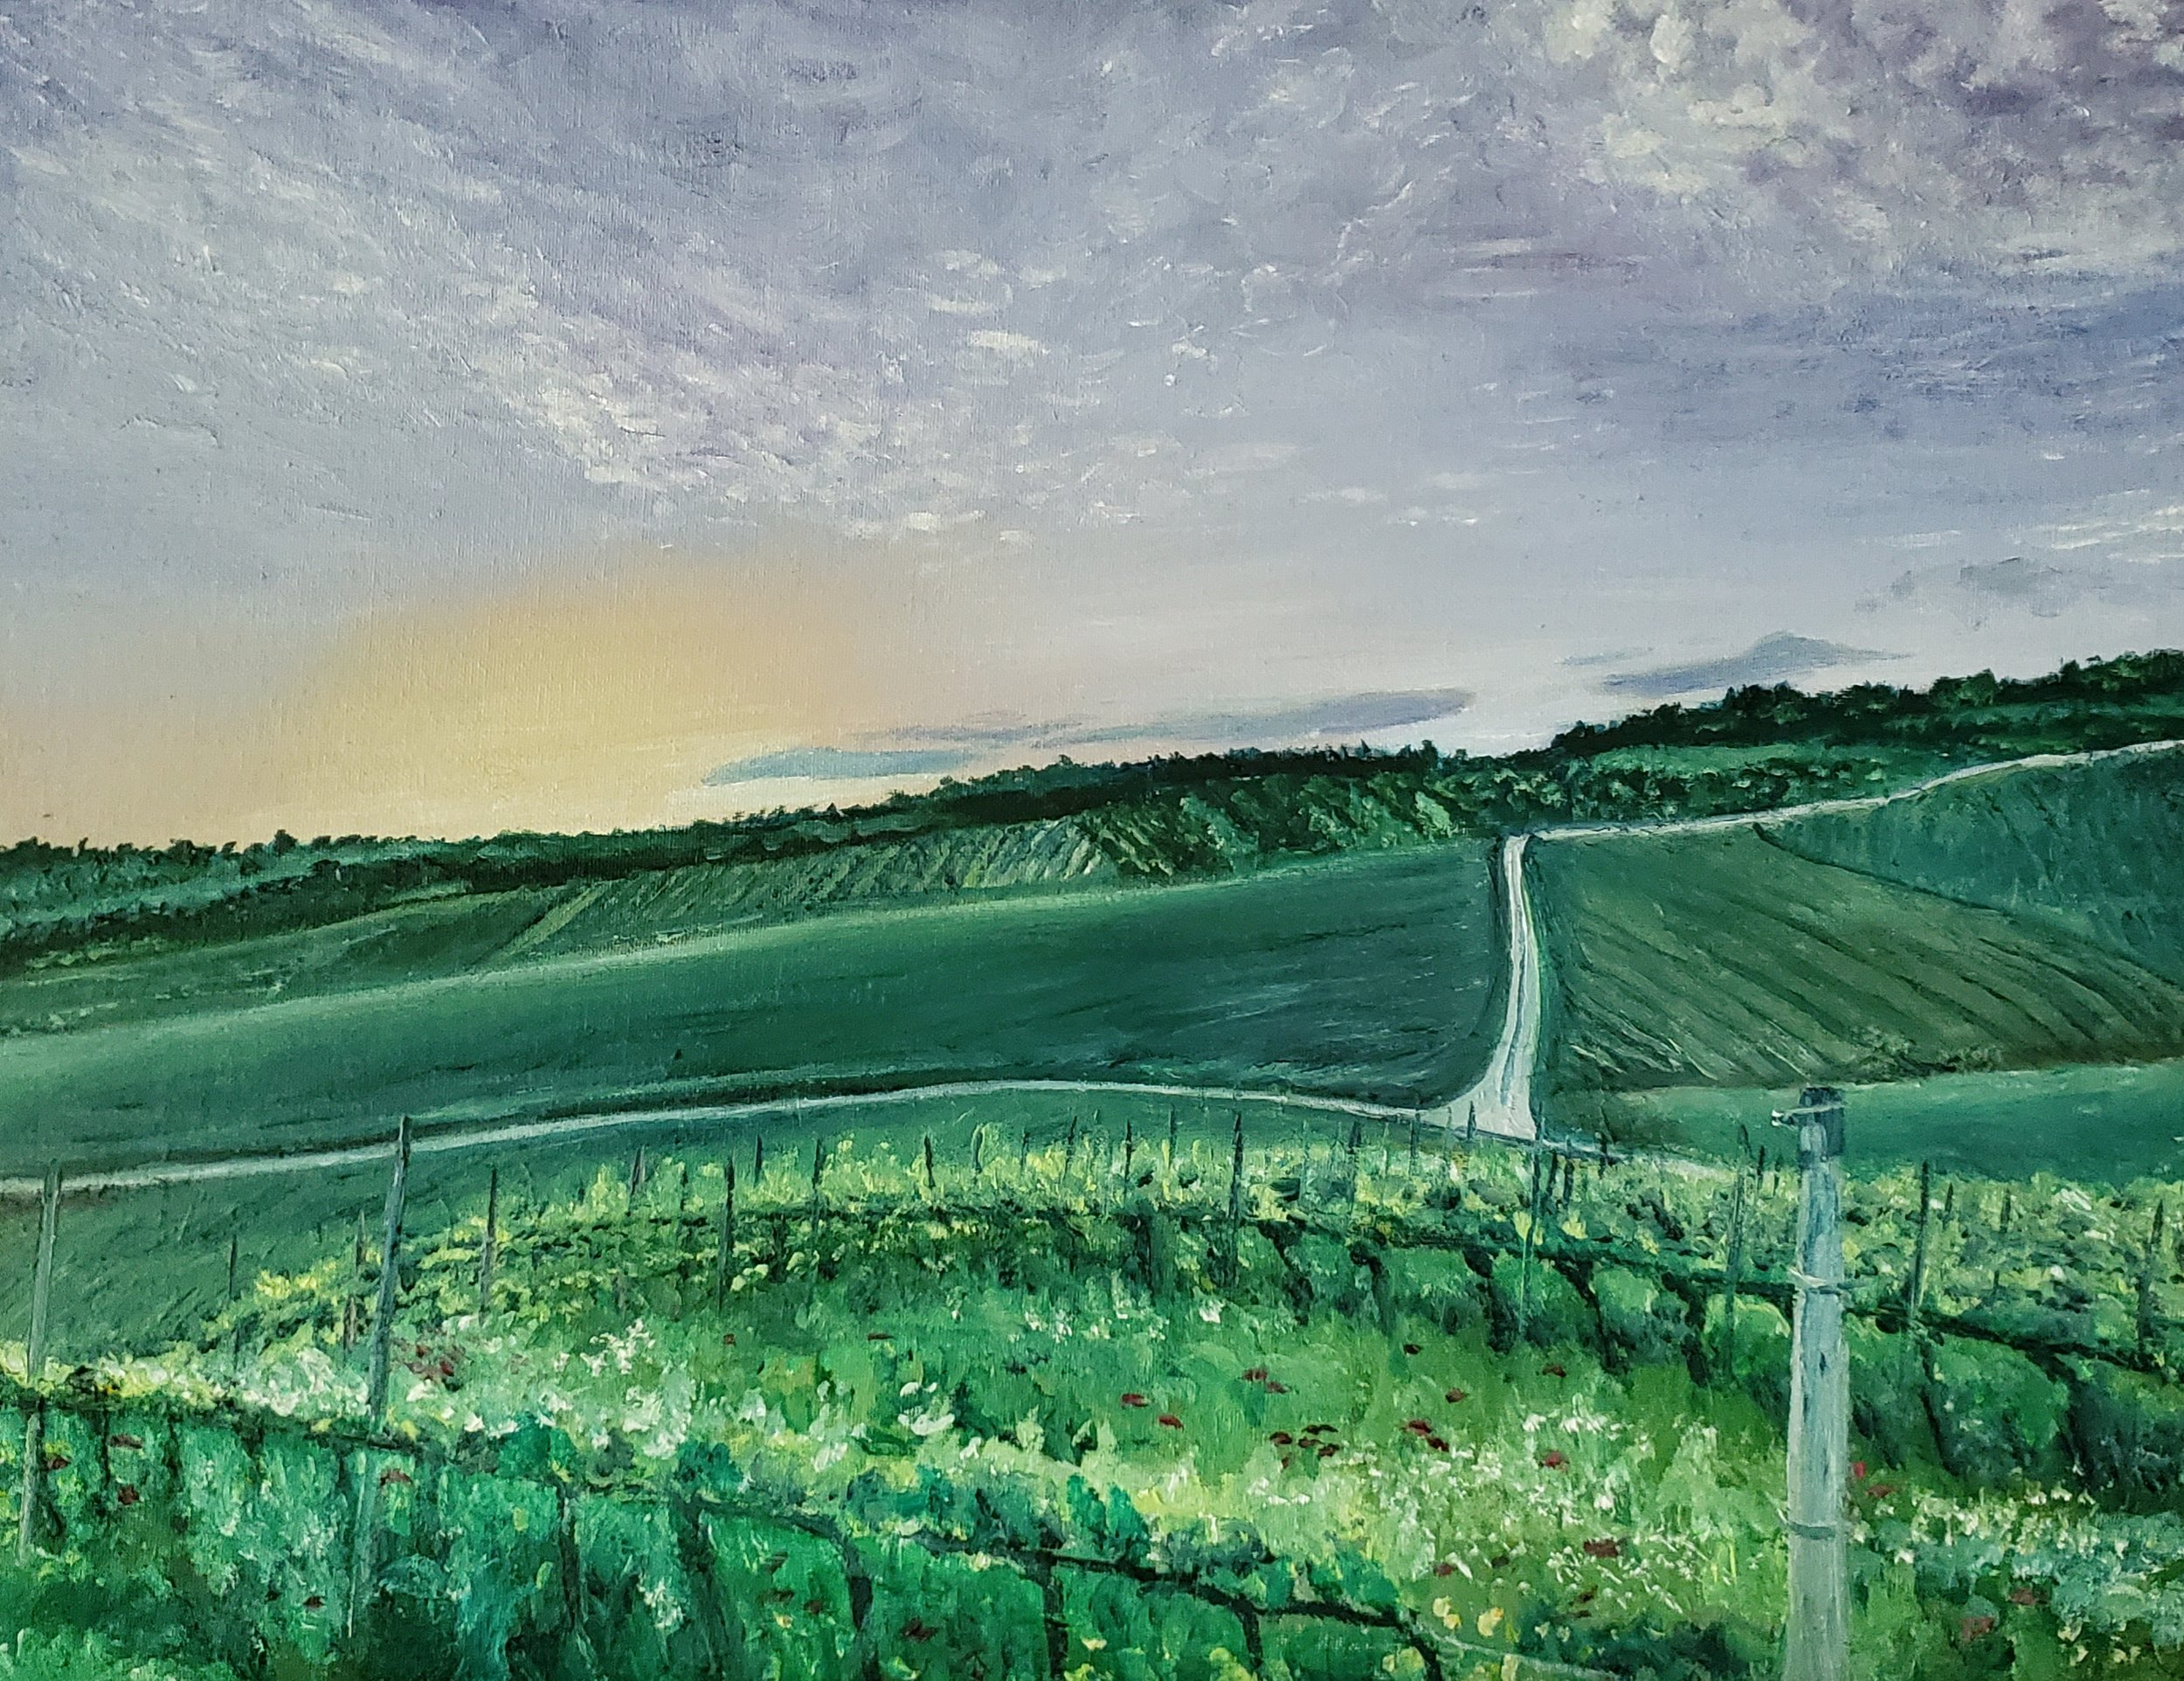 Vineyards, Forlì, Emiglia-Romagna, Italy; oil on panel; 2019